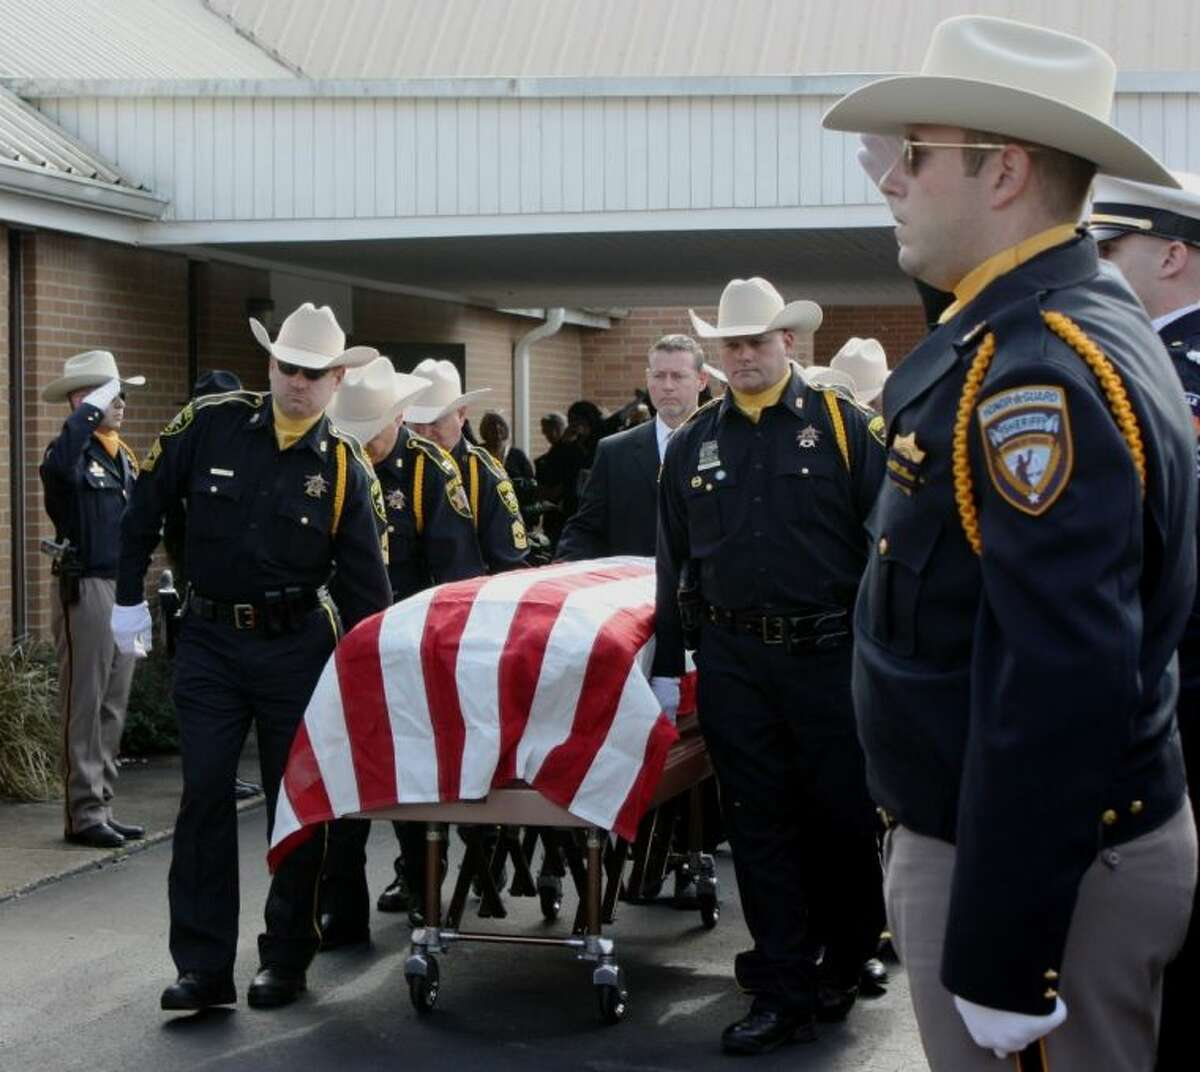 San Jacinto County Sheriff James Lewis Walters died on Jan. 9. His funeral was held on Jan. 11 at the First Baptist Church in Shepherd. Walters had been battling cancer for many months and died shortly after being sworn-in for his second term in office.